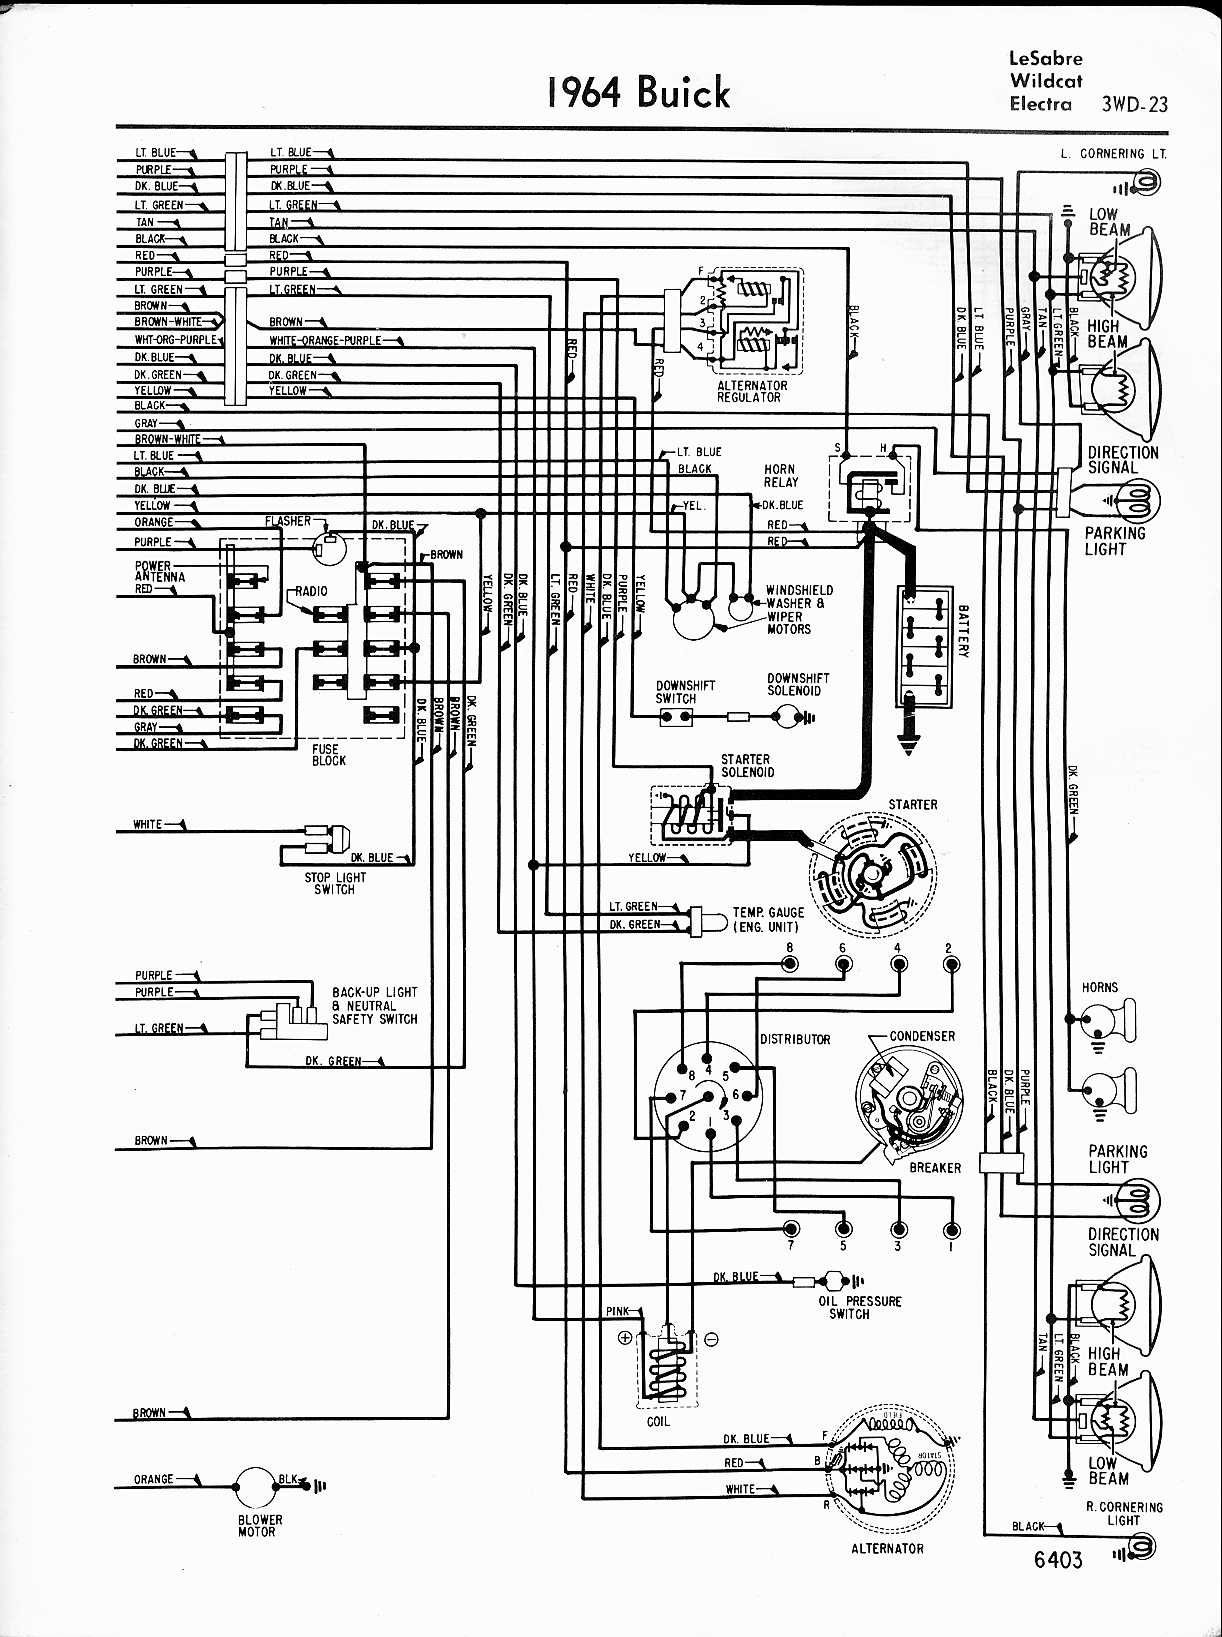 2000 Buick Regal Ignition Switch Wiring Solution Of Your Relay Location Battery 2004 Land Rover Simple Diagram Rh 7 Terranut Store Module